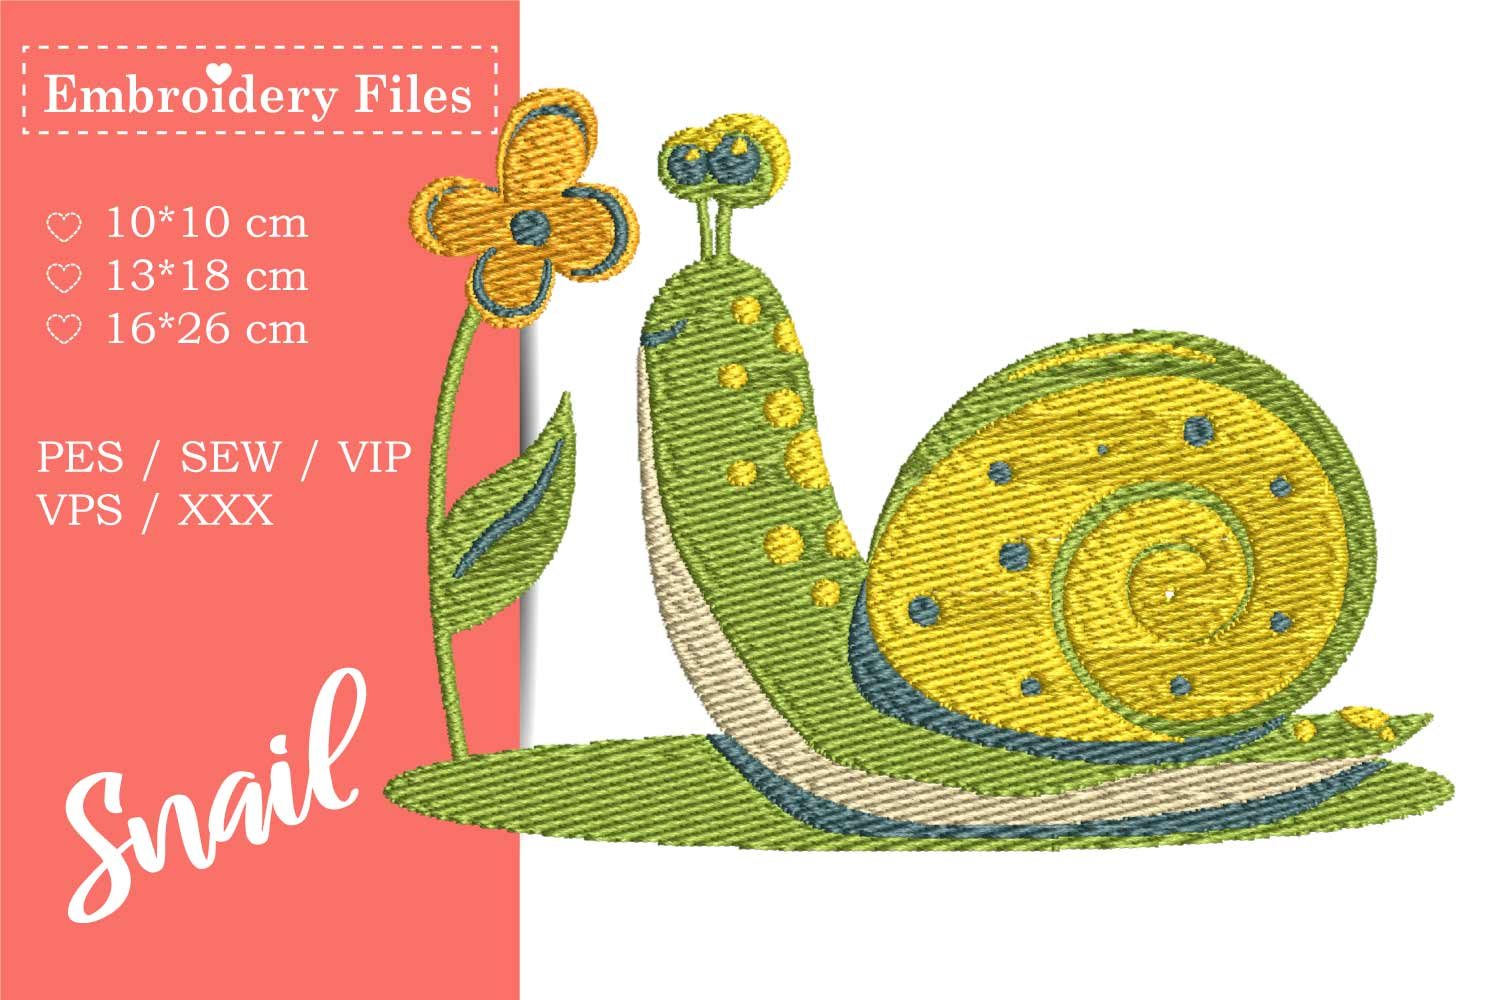 A cute Snail - Embroidery File for Beginners example image 1